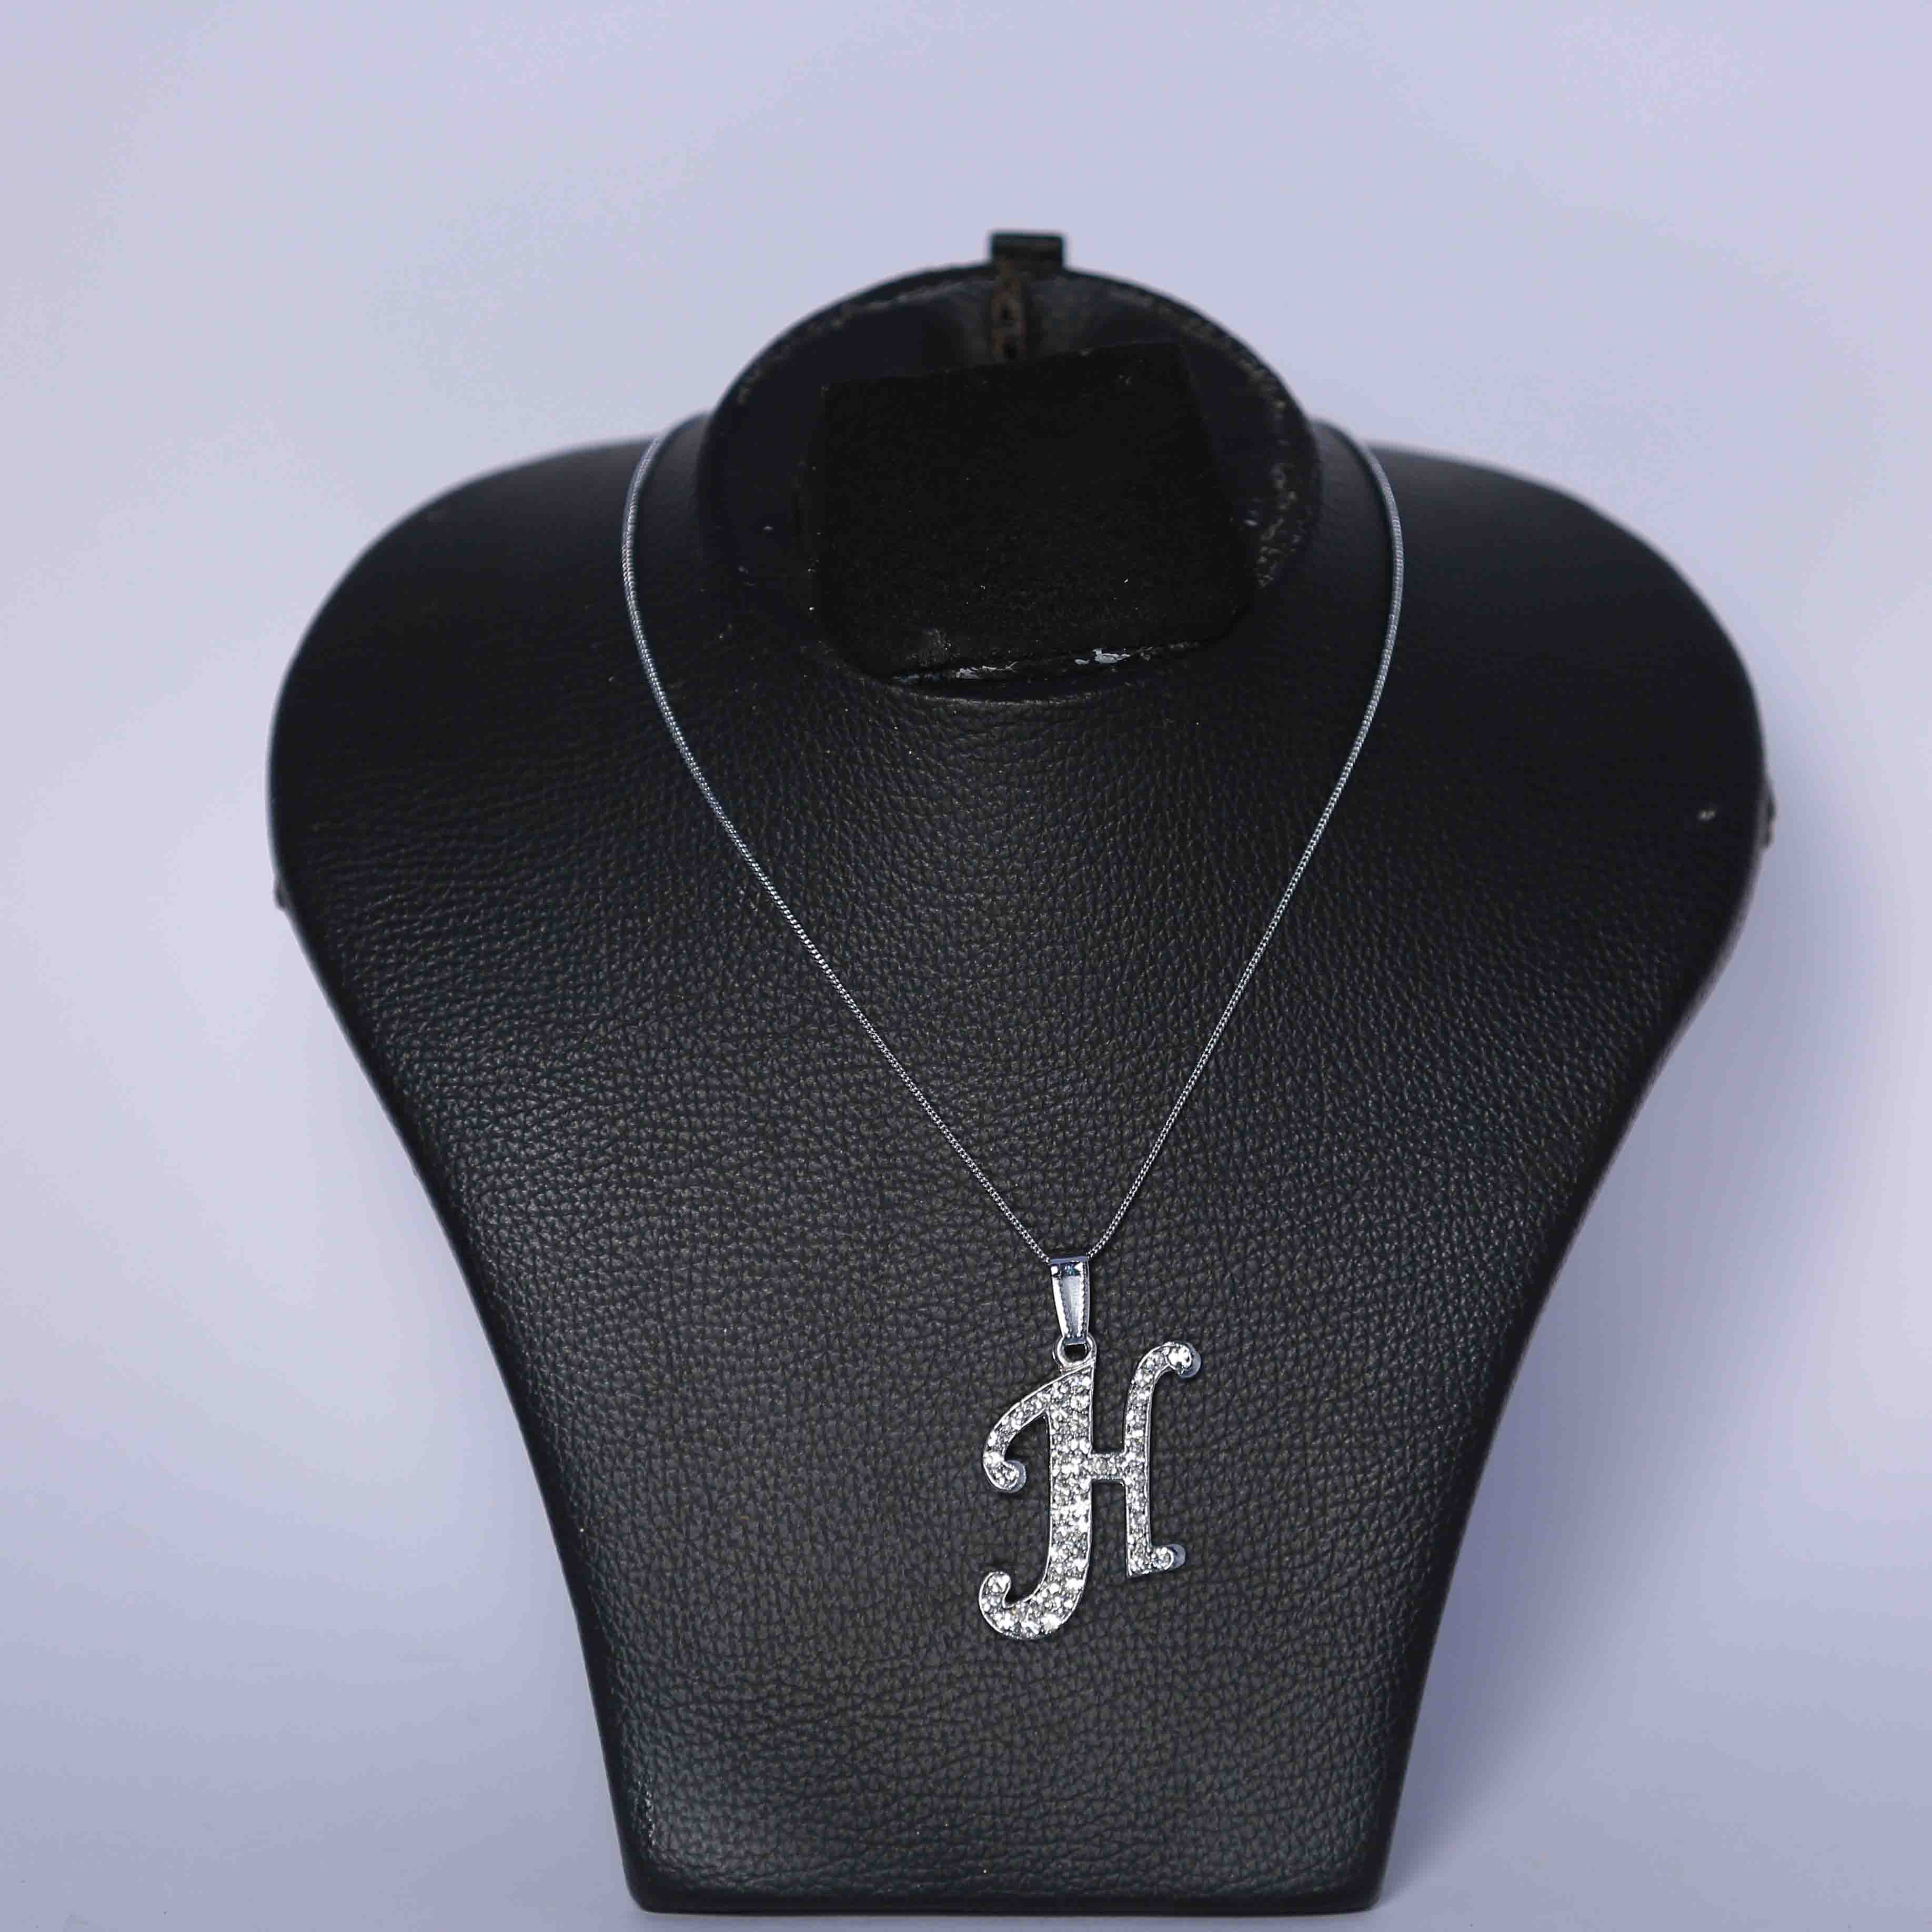 Initial letters pendant necklace with chain h necklace fgttttttttttt 3 fgttttttttttt q1 mozeypictures Image collections